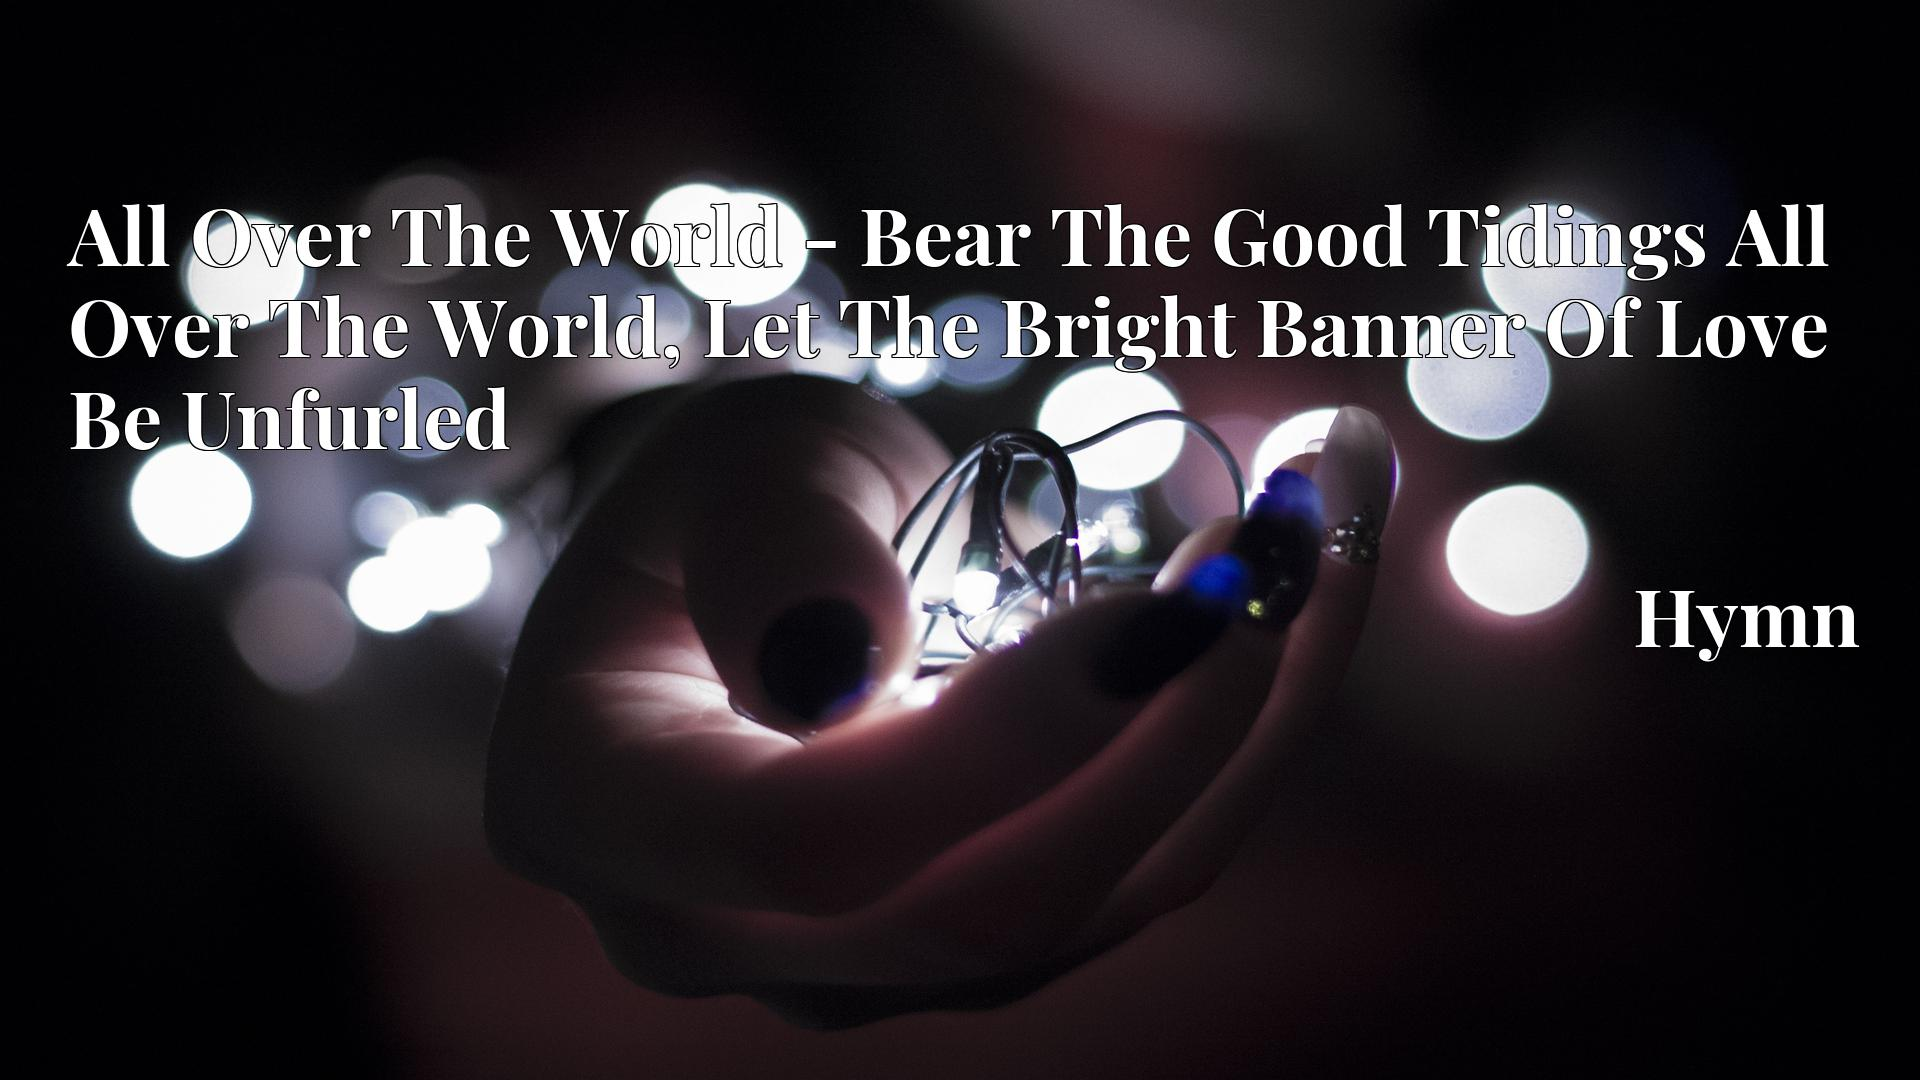 All Over The World - Bear The Good Tidings All Over The World, Let The Bright Banner Of Love Be Unfurled - Hymn